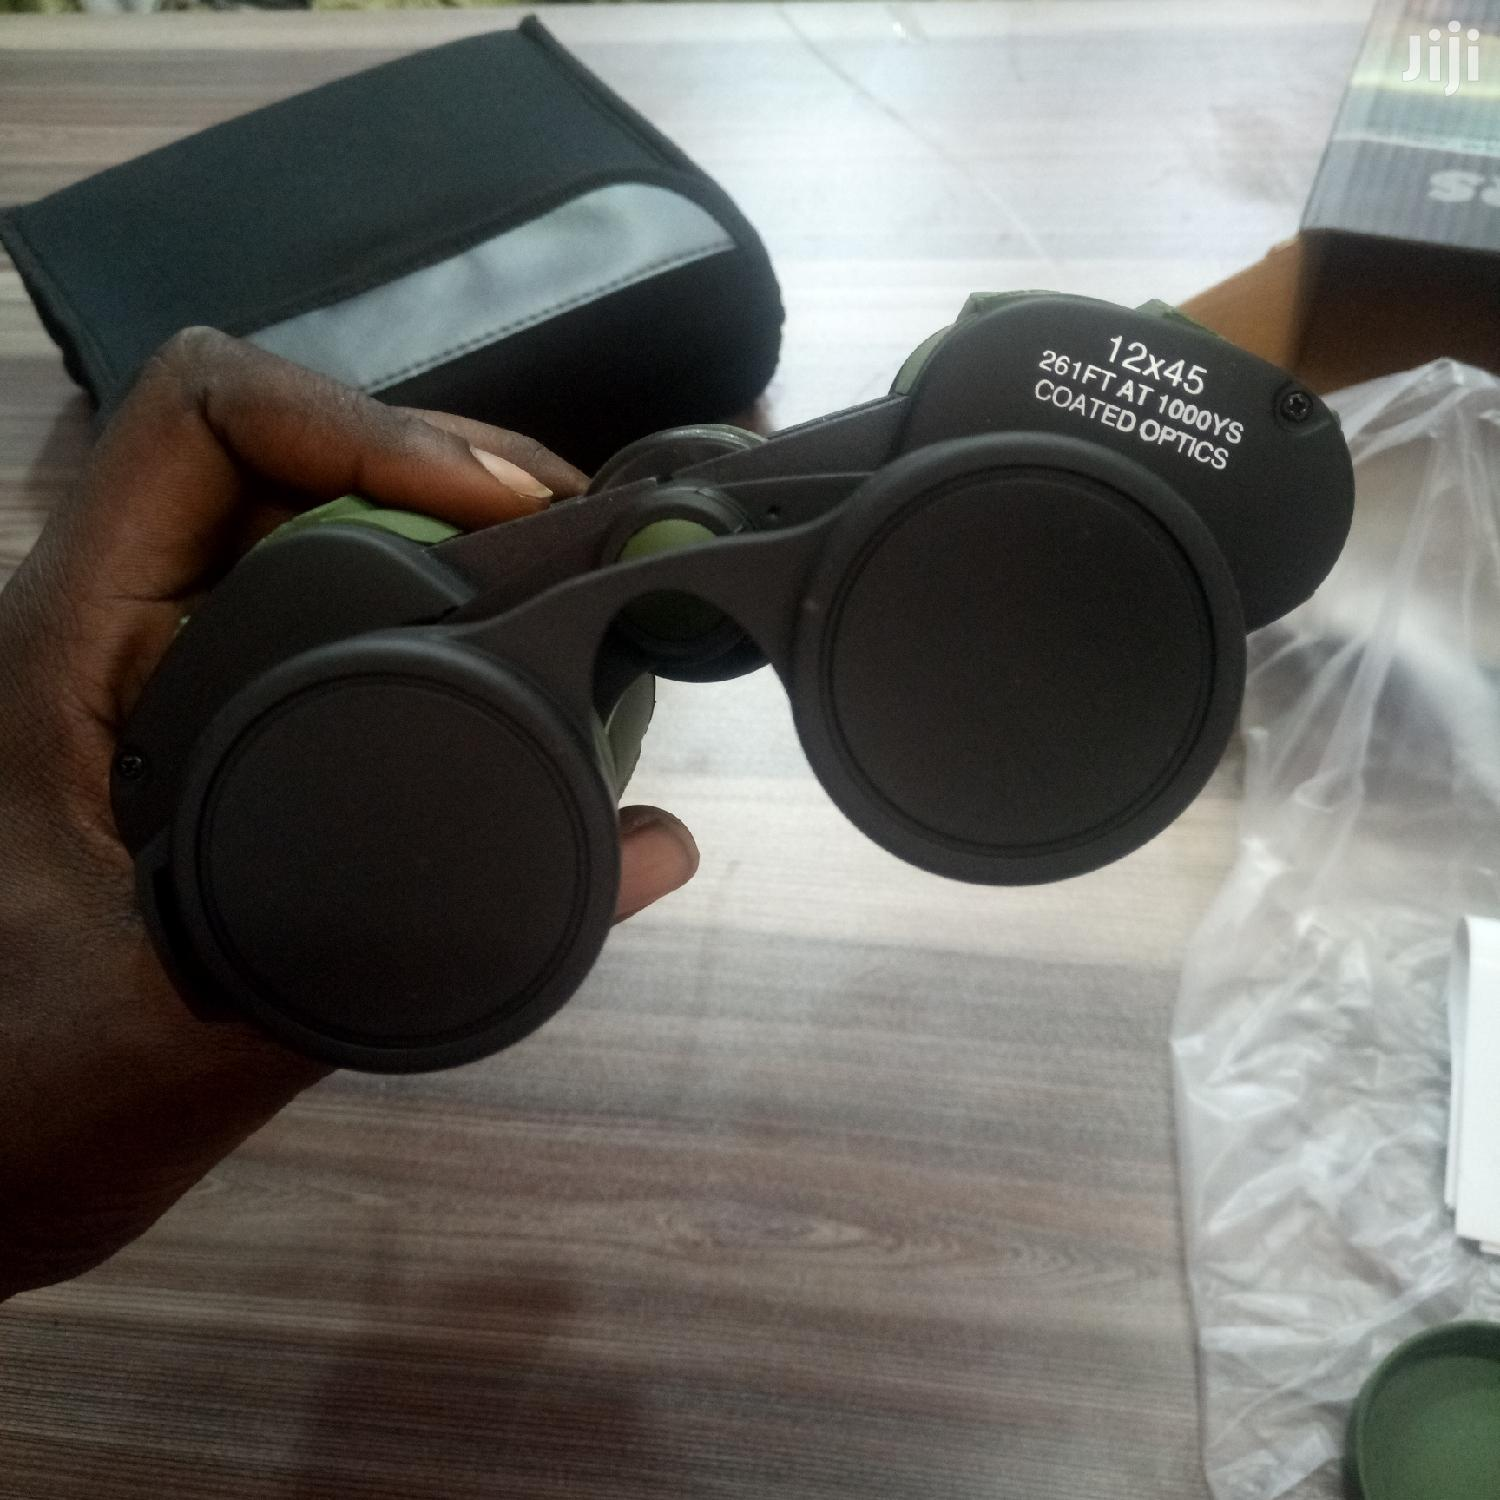 Waterproof Long Range Binoculars (12 X 45) | Camping Gear for sale in Kampala, Central Region, Uganda